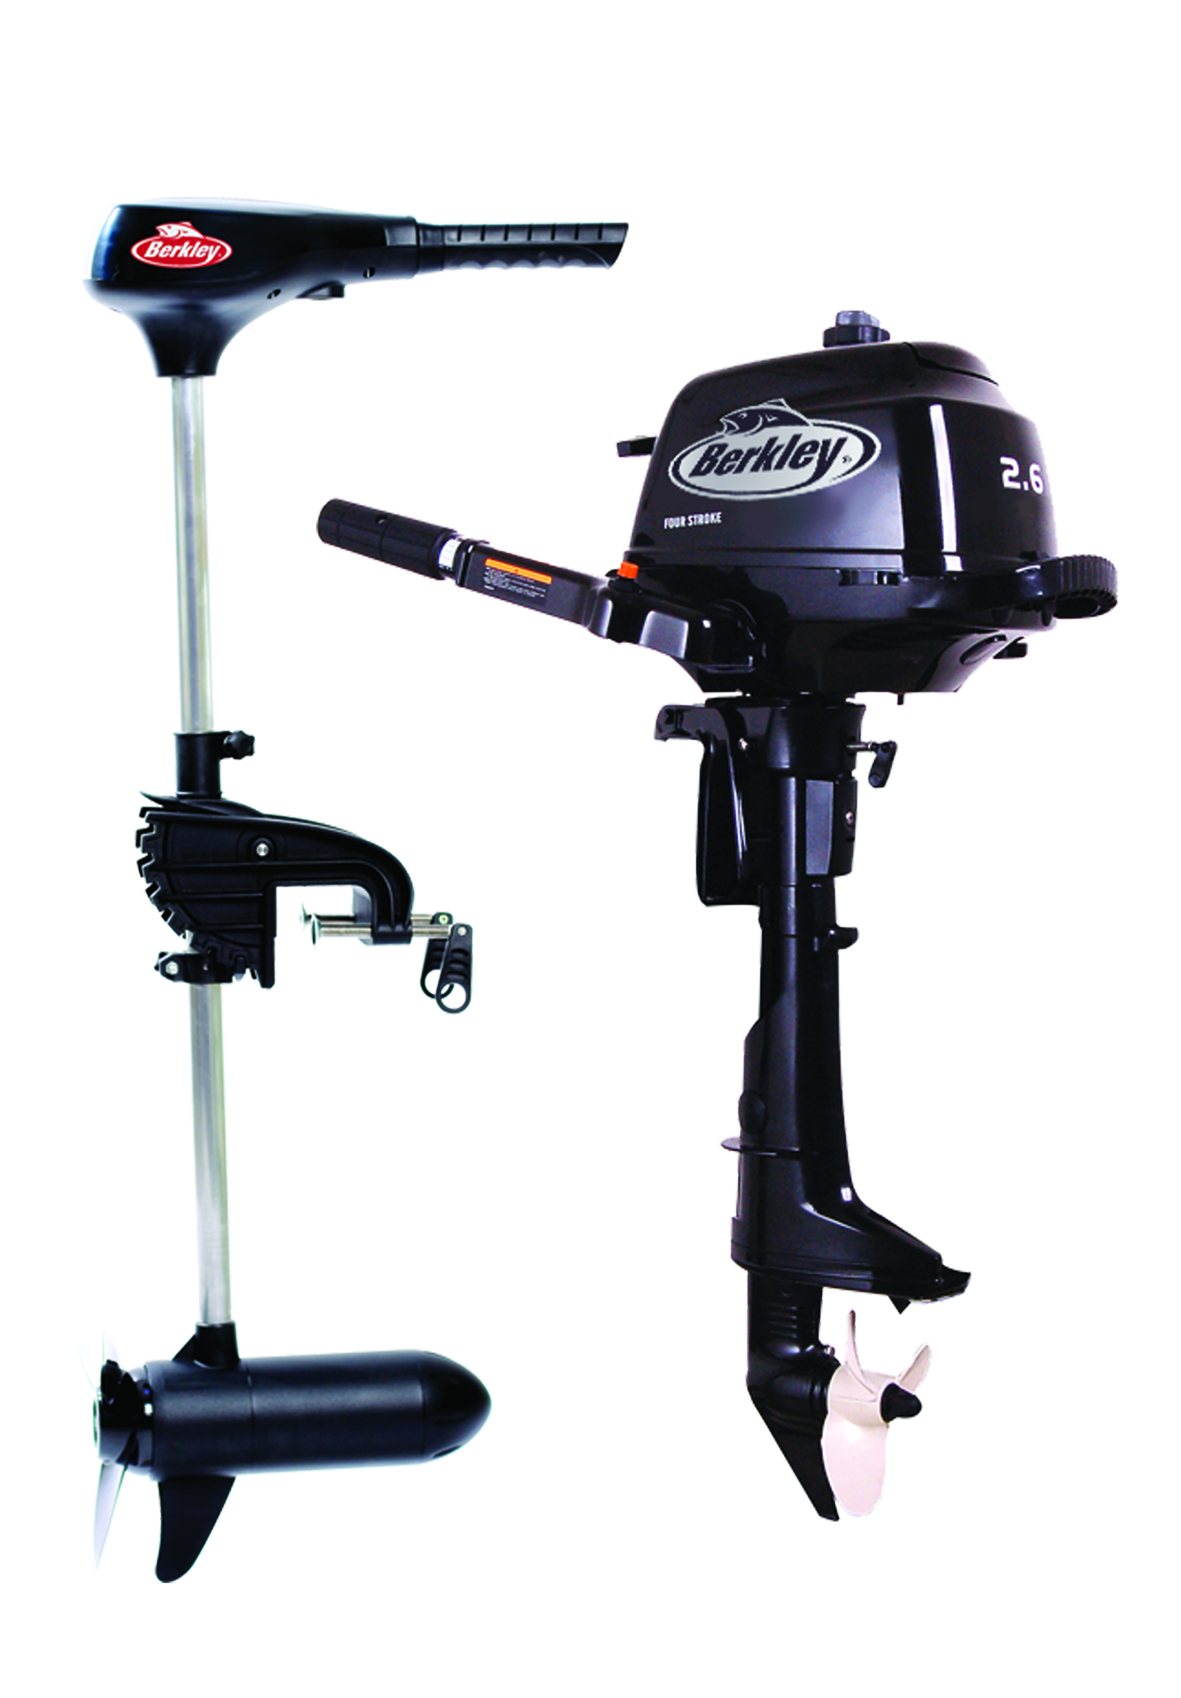 New Berkley Outboards and Trolling Motors - BNB Fishing Mag